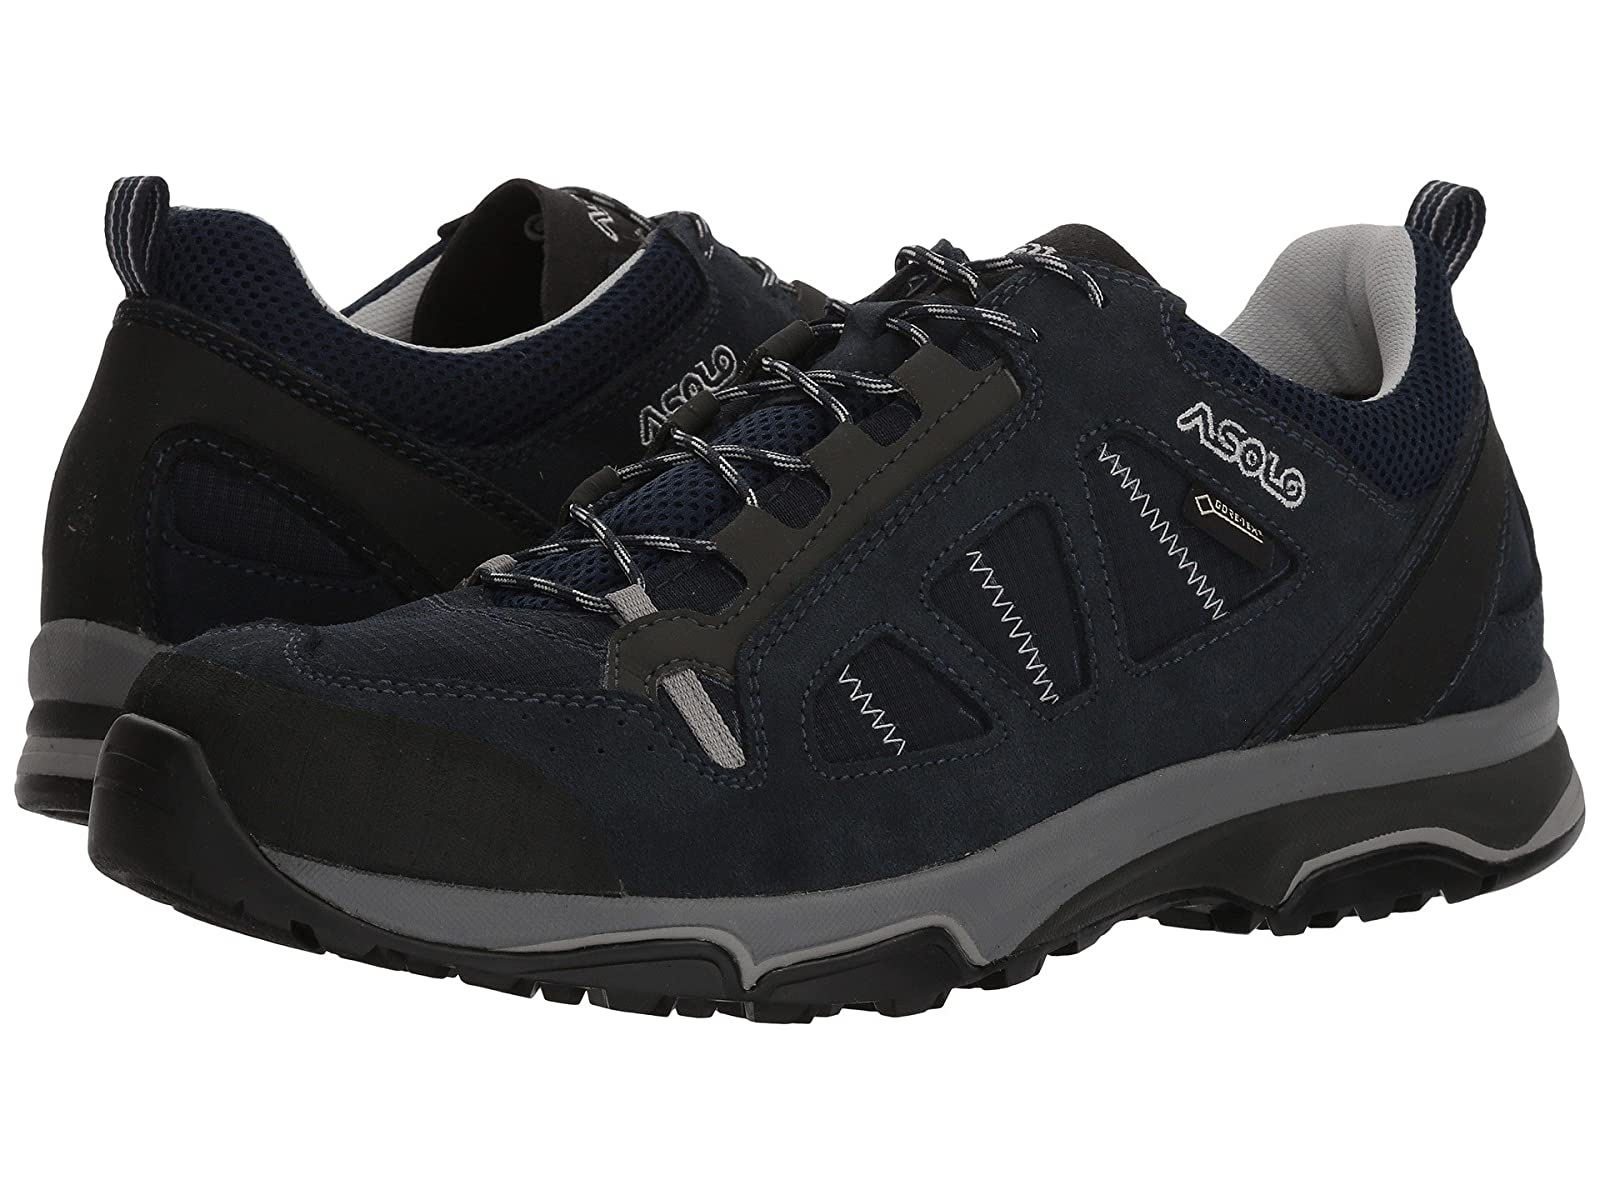 Asolo Megaton GV MMAtmospheric grades have affordable shoes